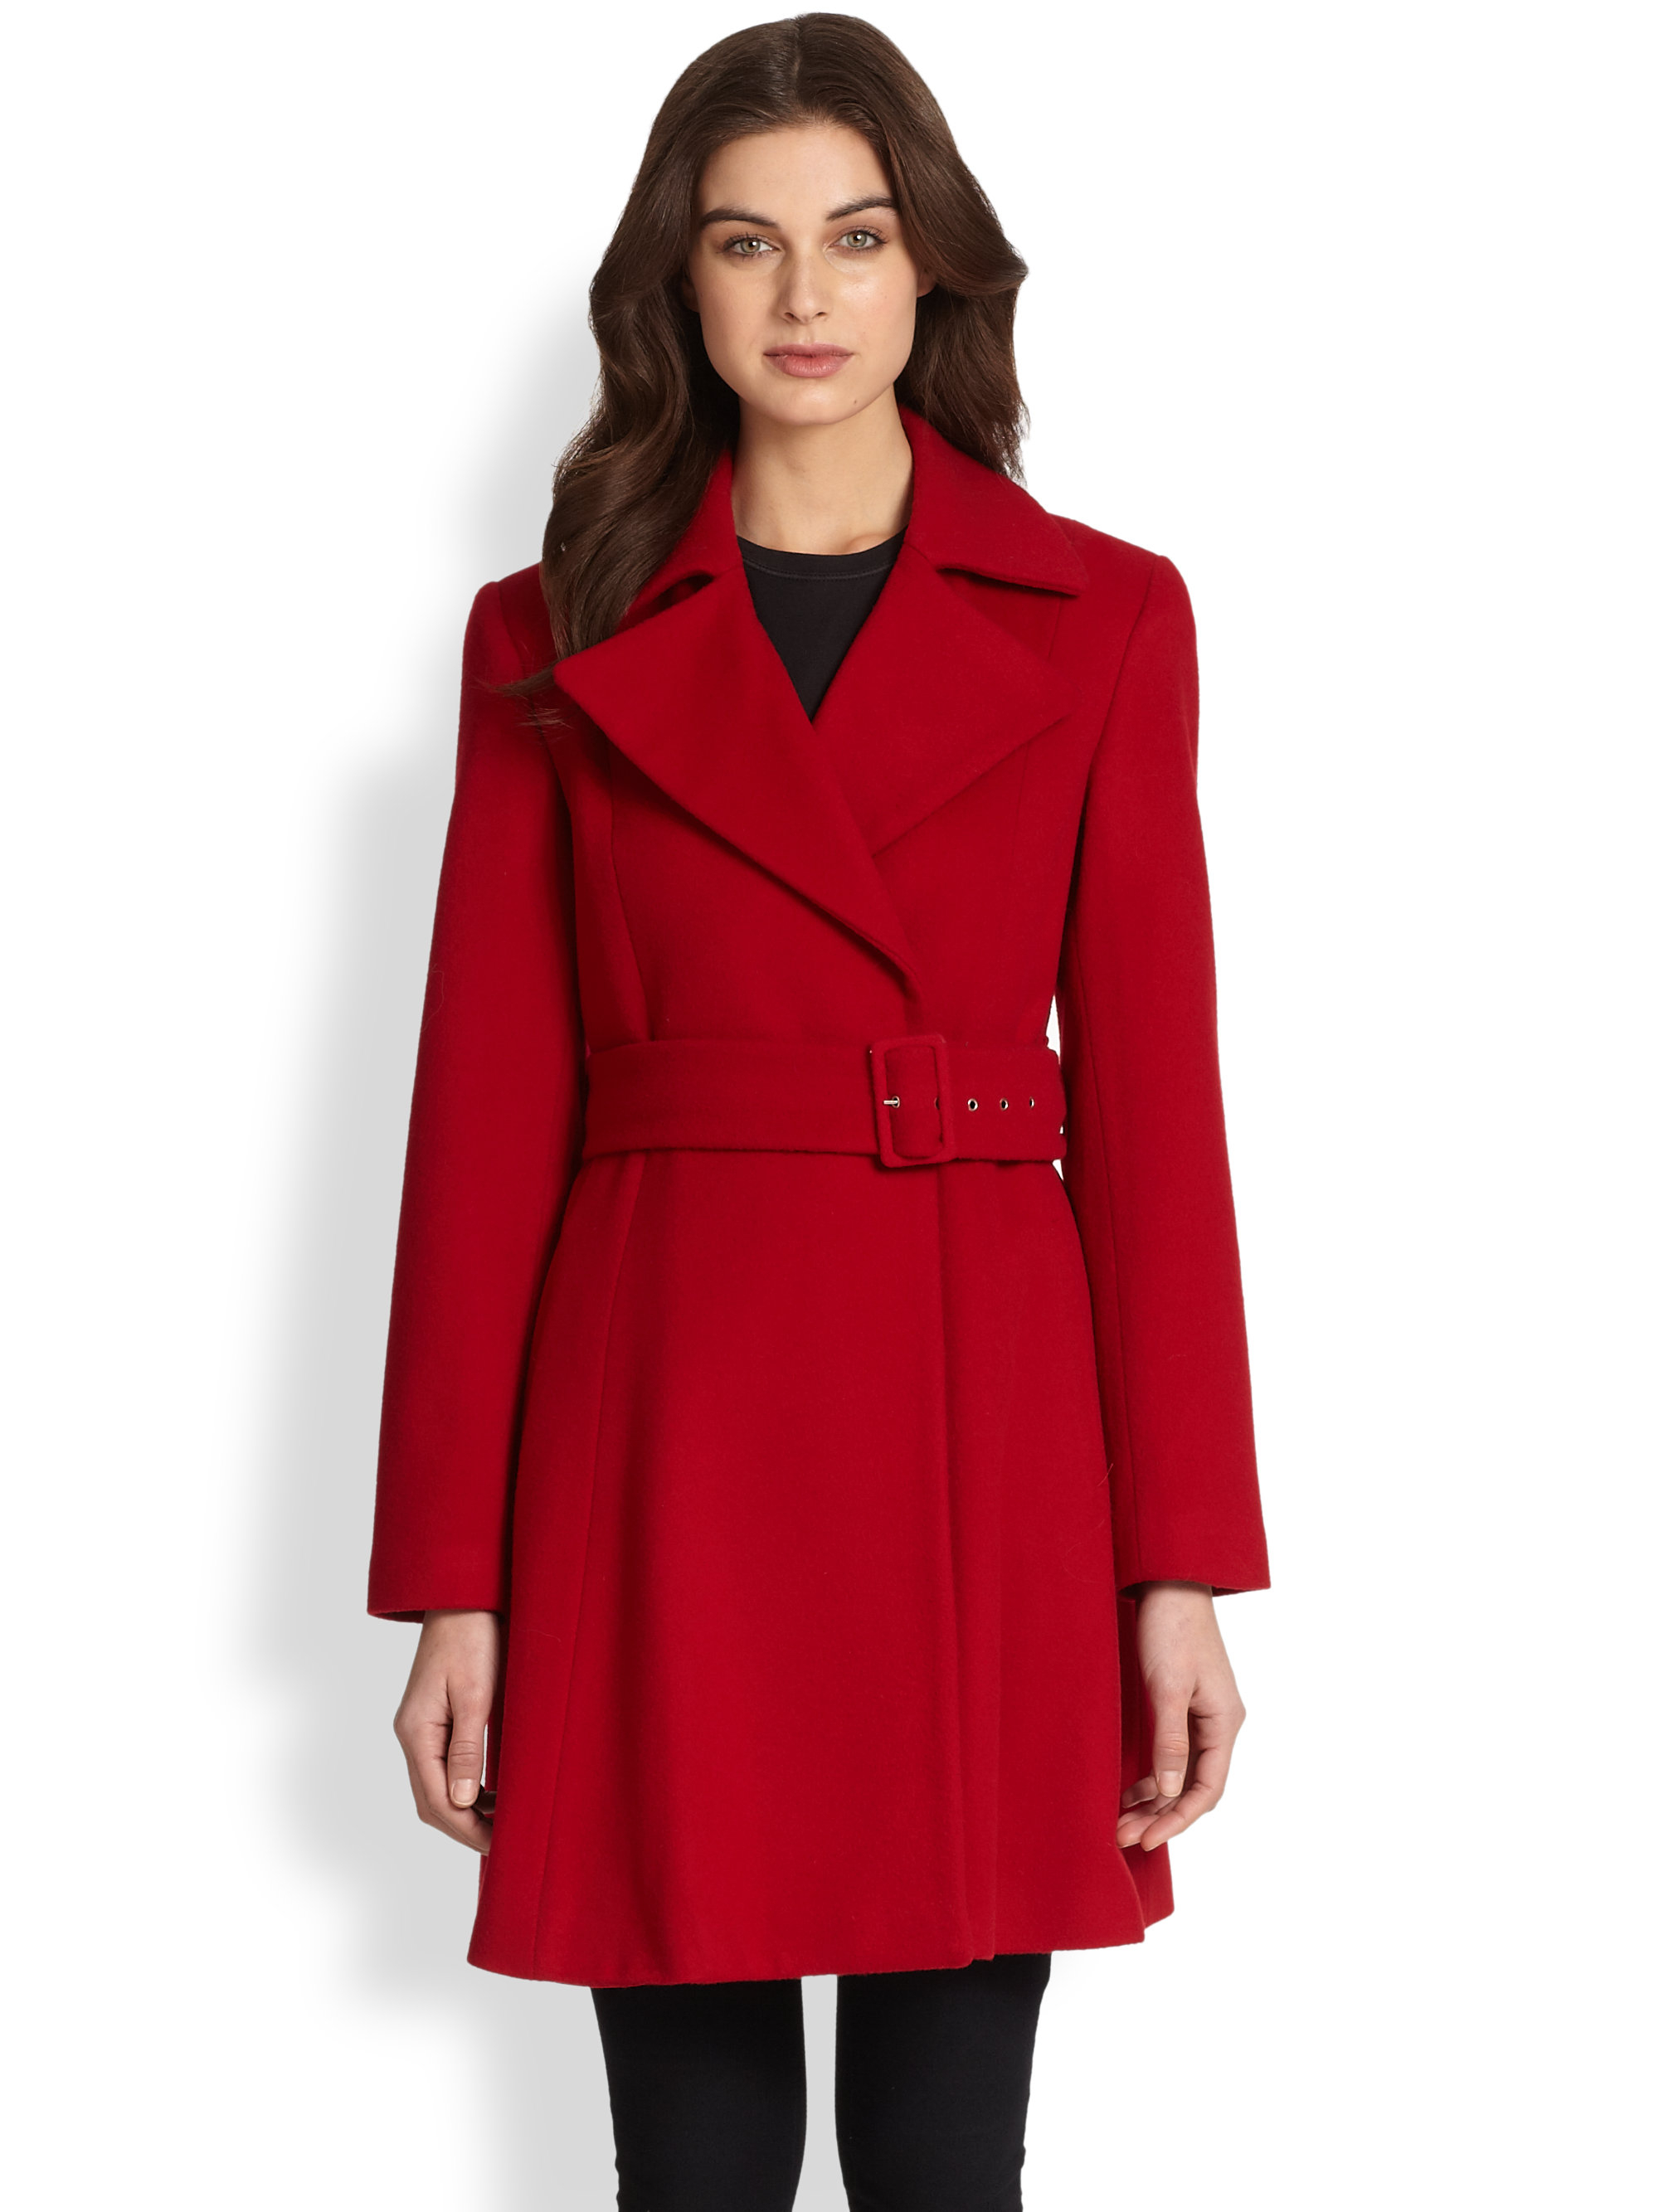 Sofia cashmere Wool Cashmere Belted Coat in Red